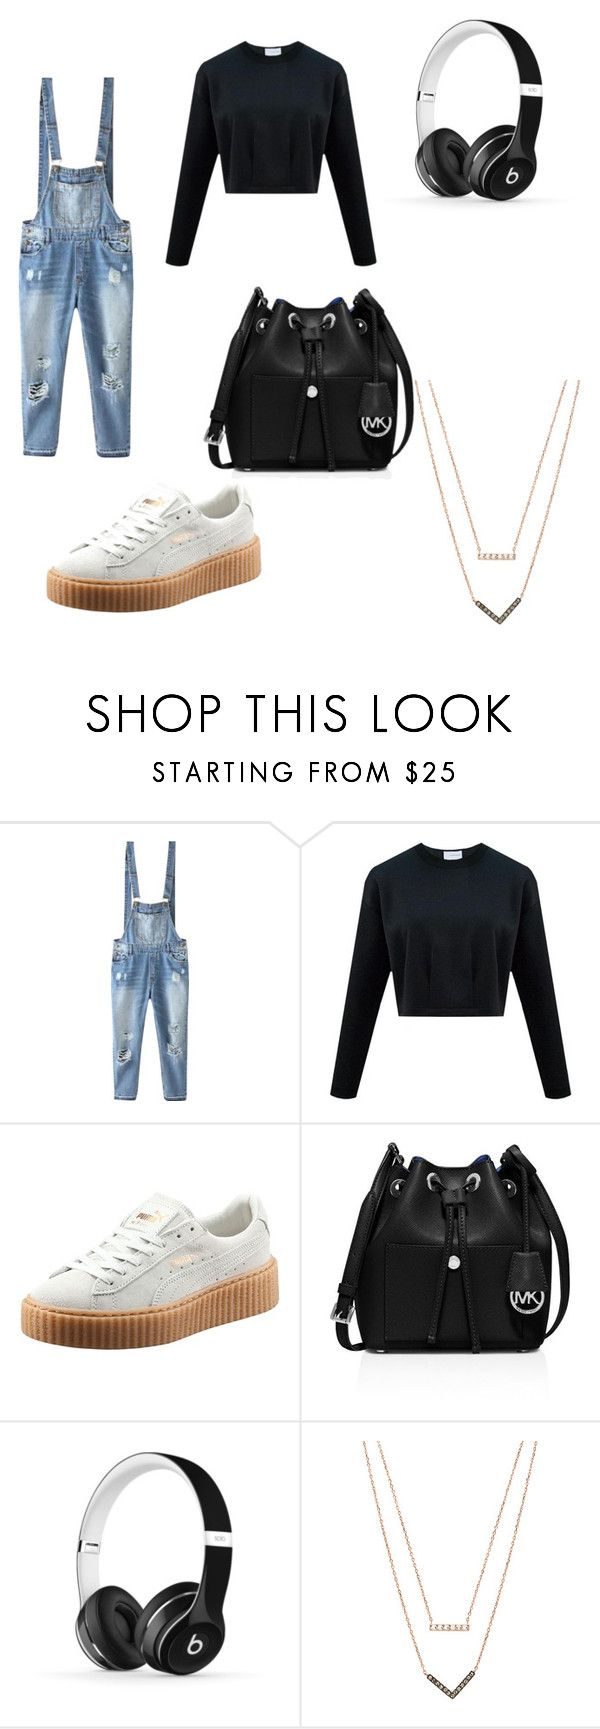 """""""Untitled #14"""" by chloe-be ❤ liked on Polyvore featuring Relaxfeel, Puma, MICHAEL Michael Kors, Beats by Dr. Dre and Michael Kors"""